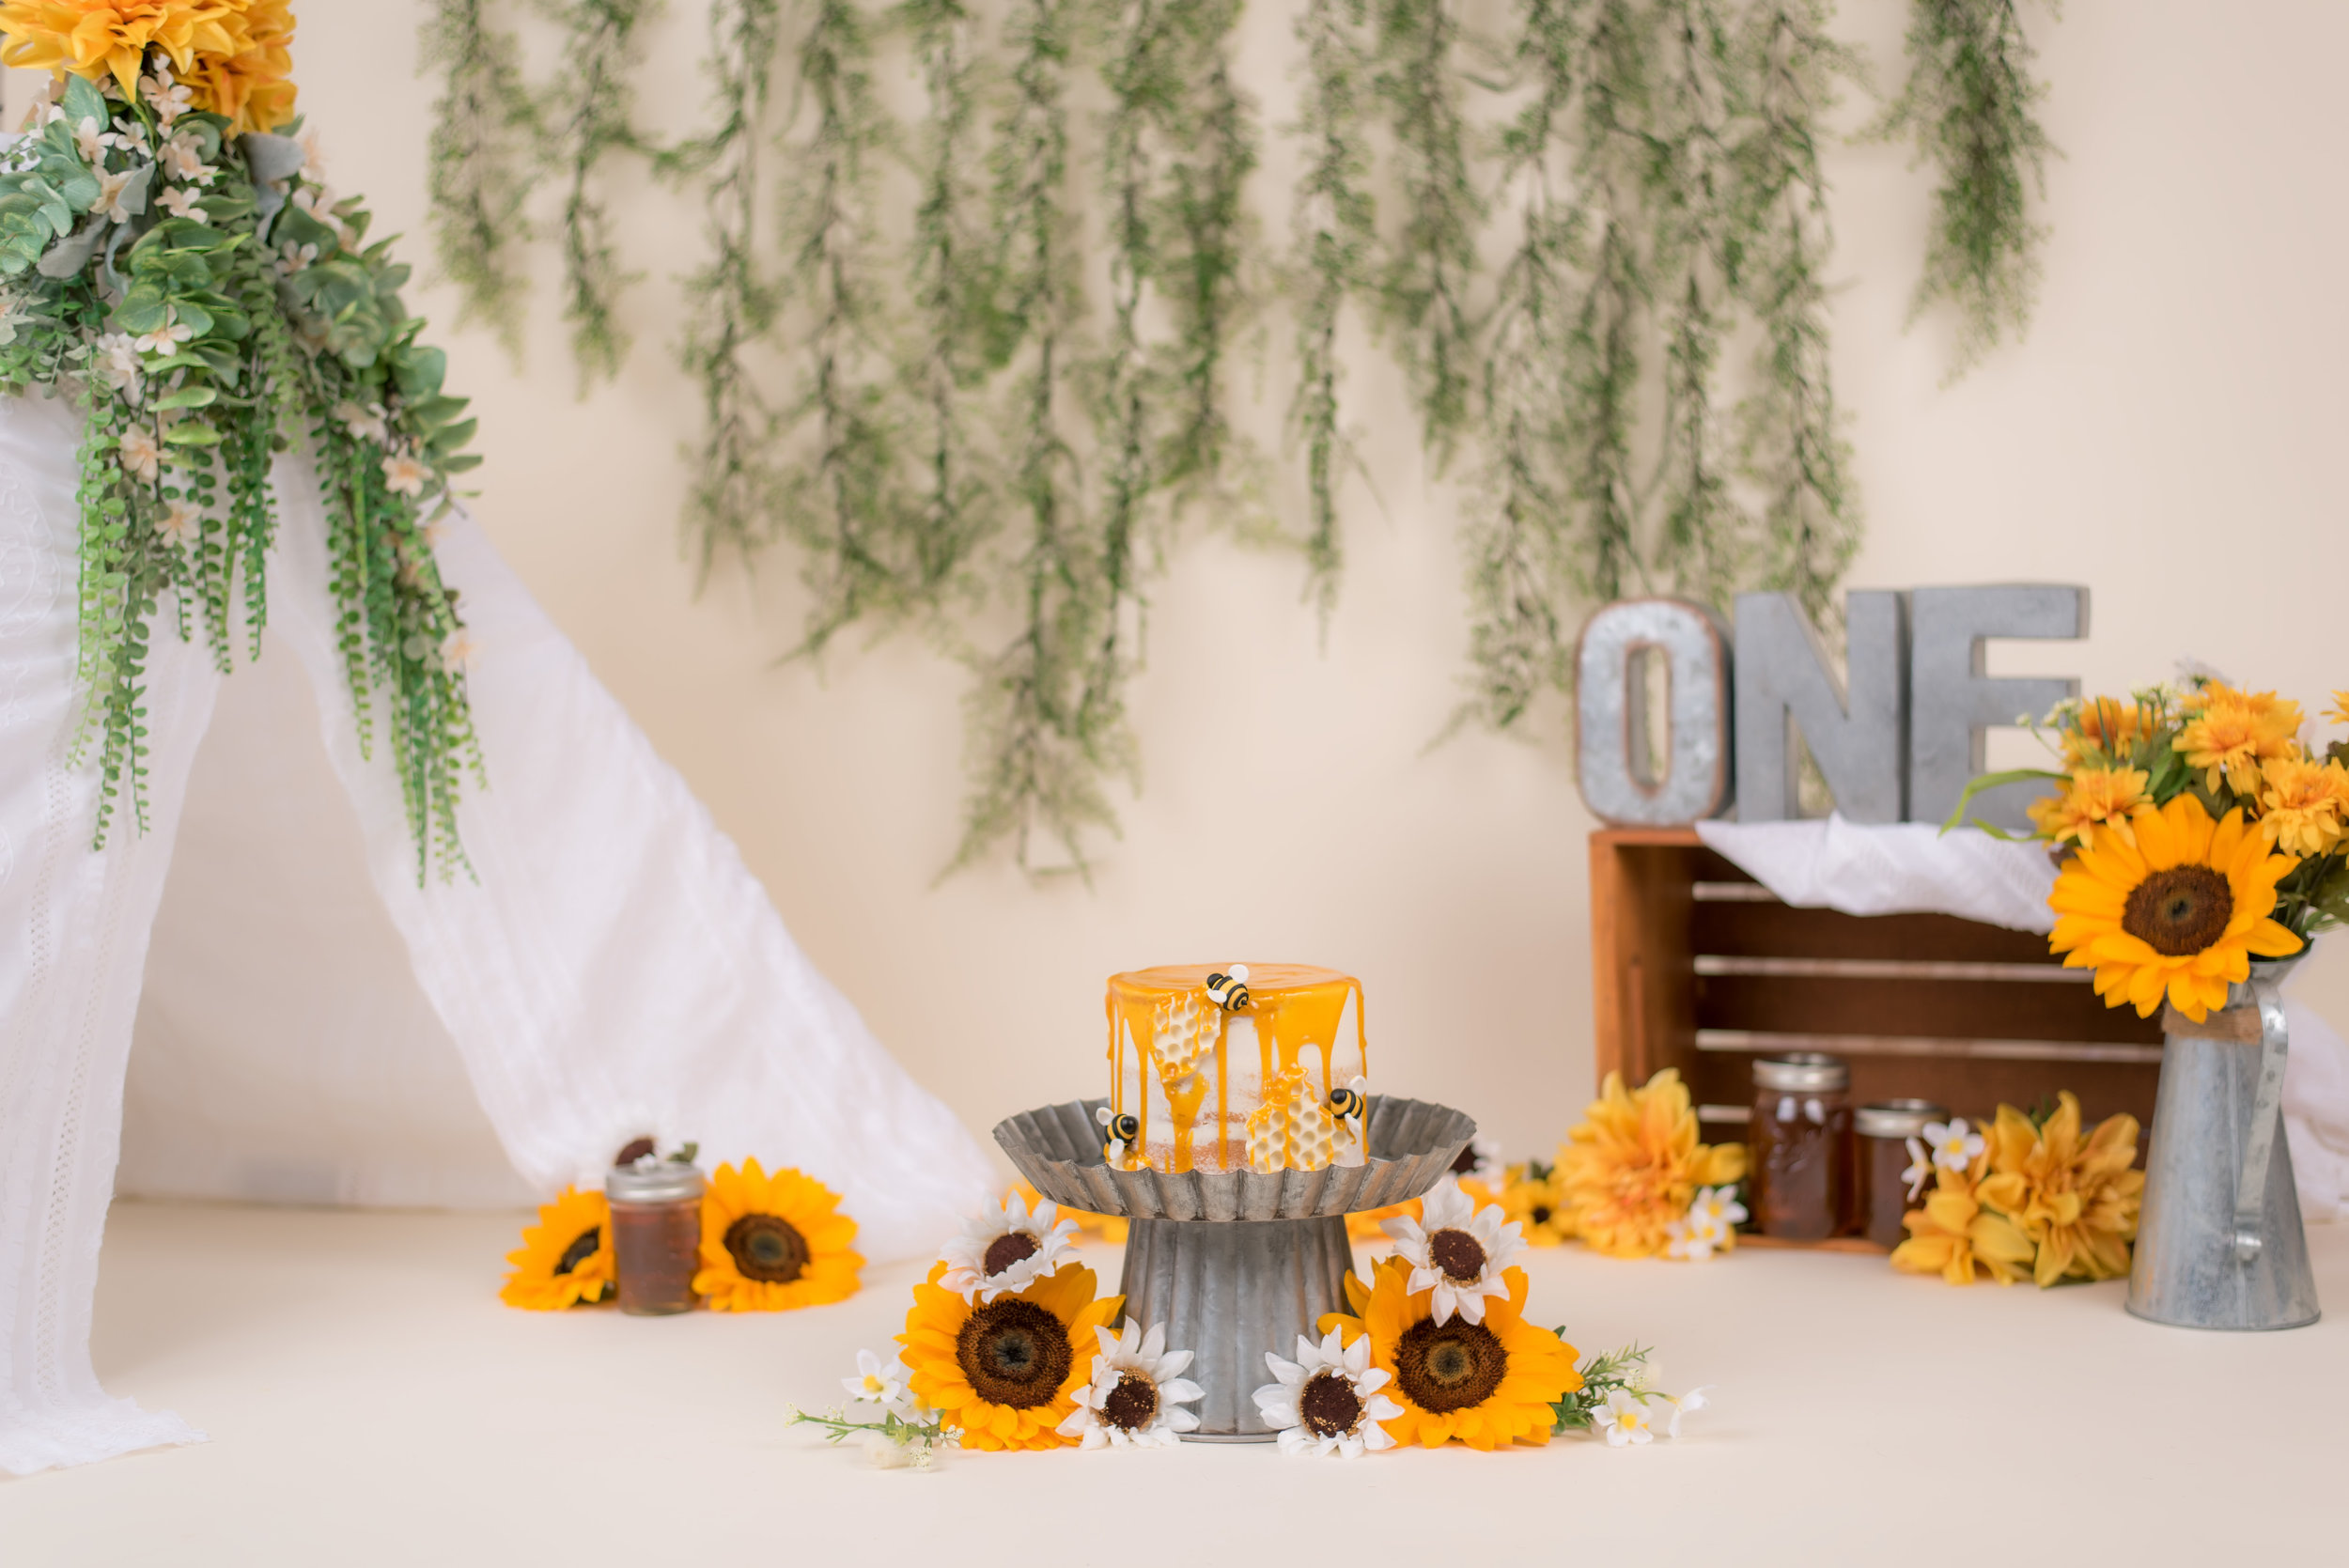 Honey Bee Rustic Cake Smash Theme with yellow sunflower and tent